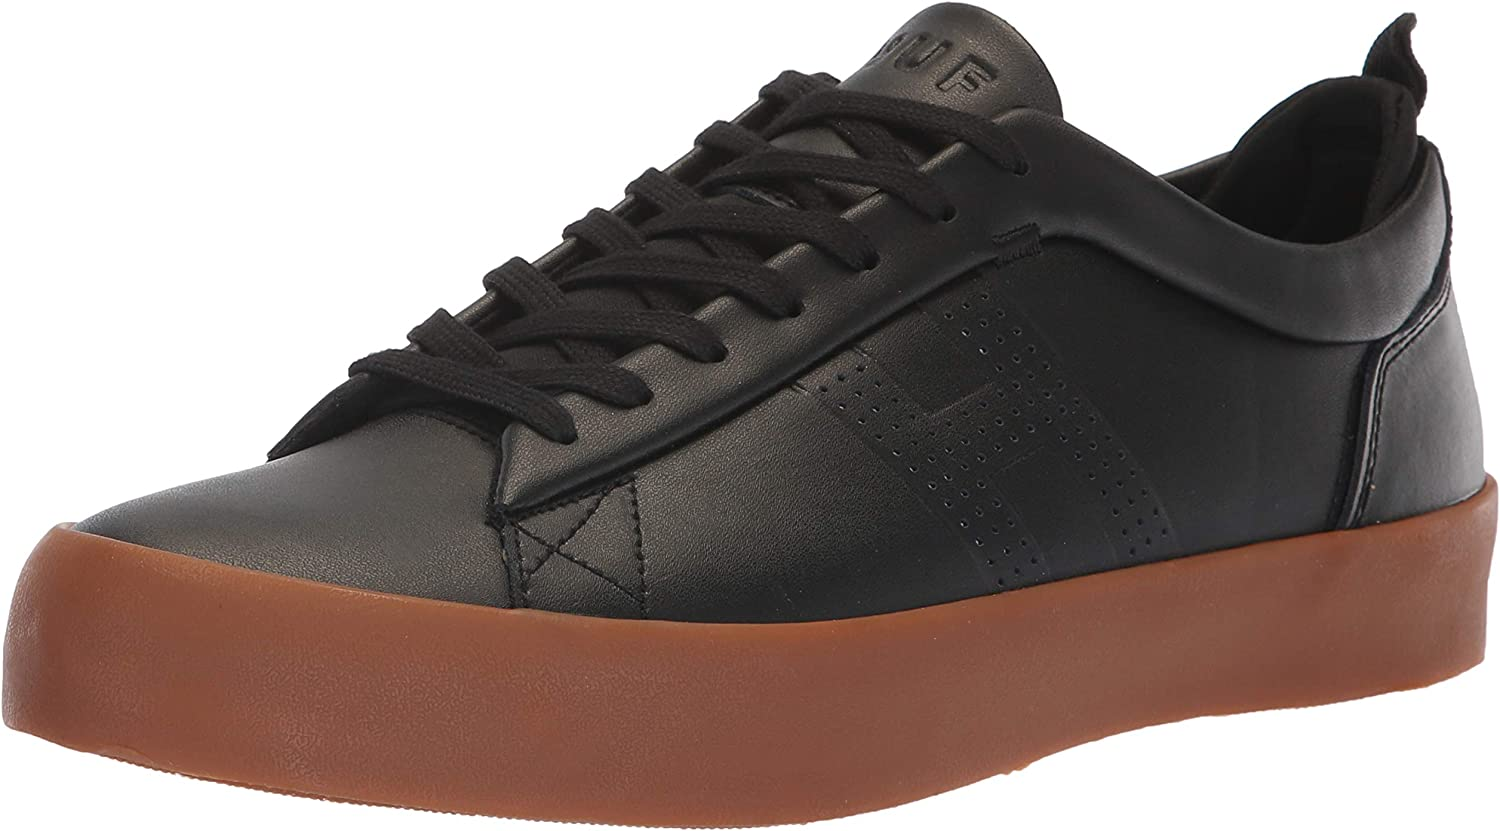 HUF New products world's Opening large release sale highest quality popular Men's Clive